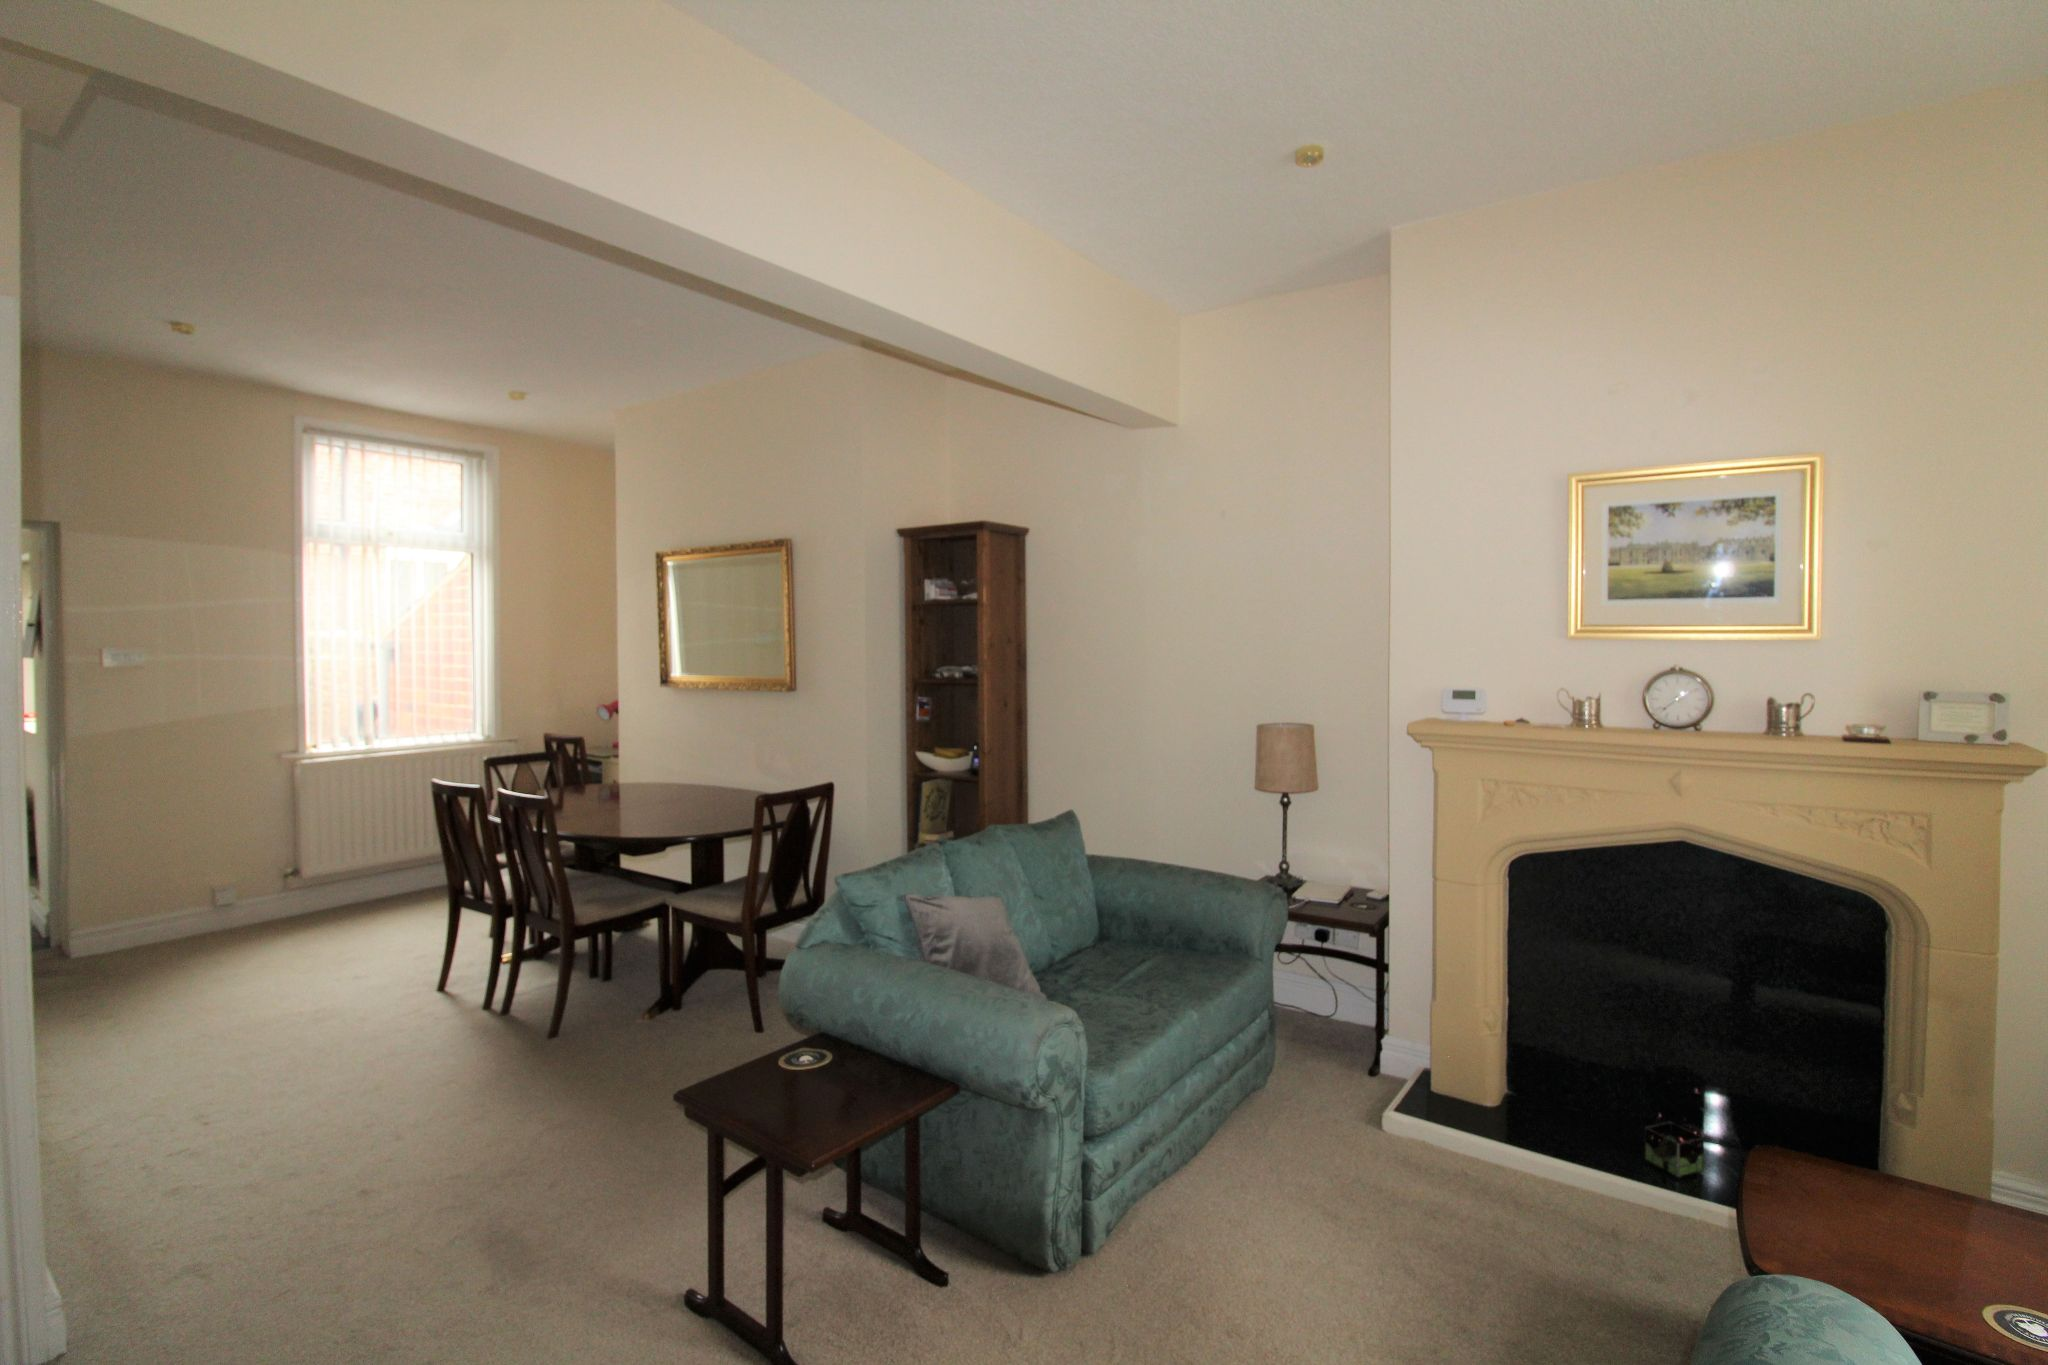 2 bedroom mid terraced house Let Agreed in Bishop Auckland - Photograph 3.